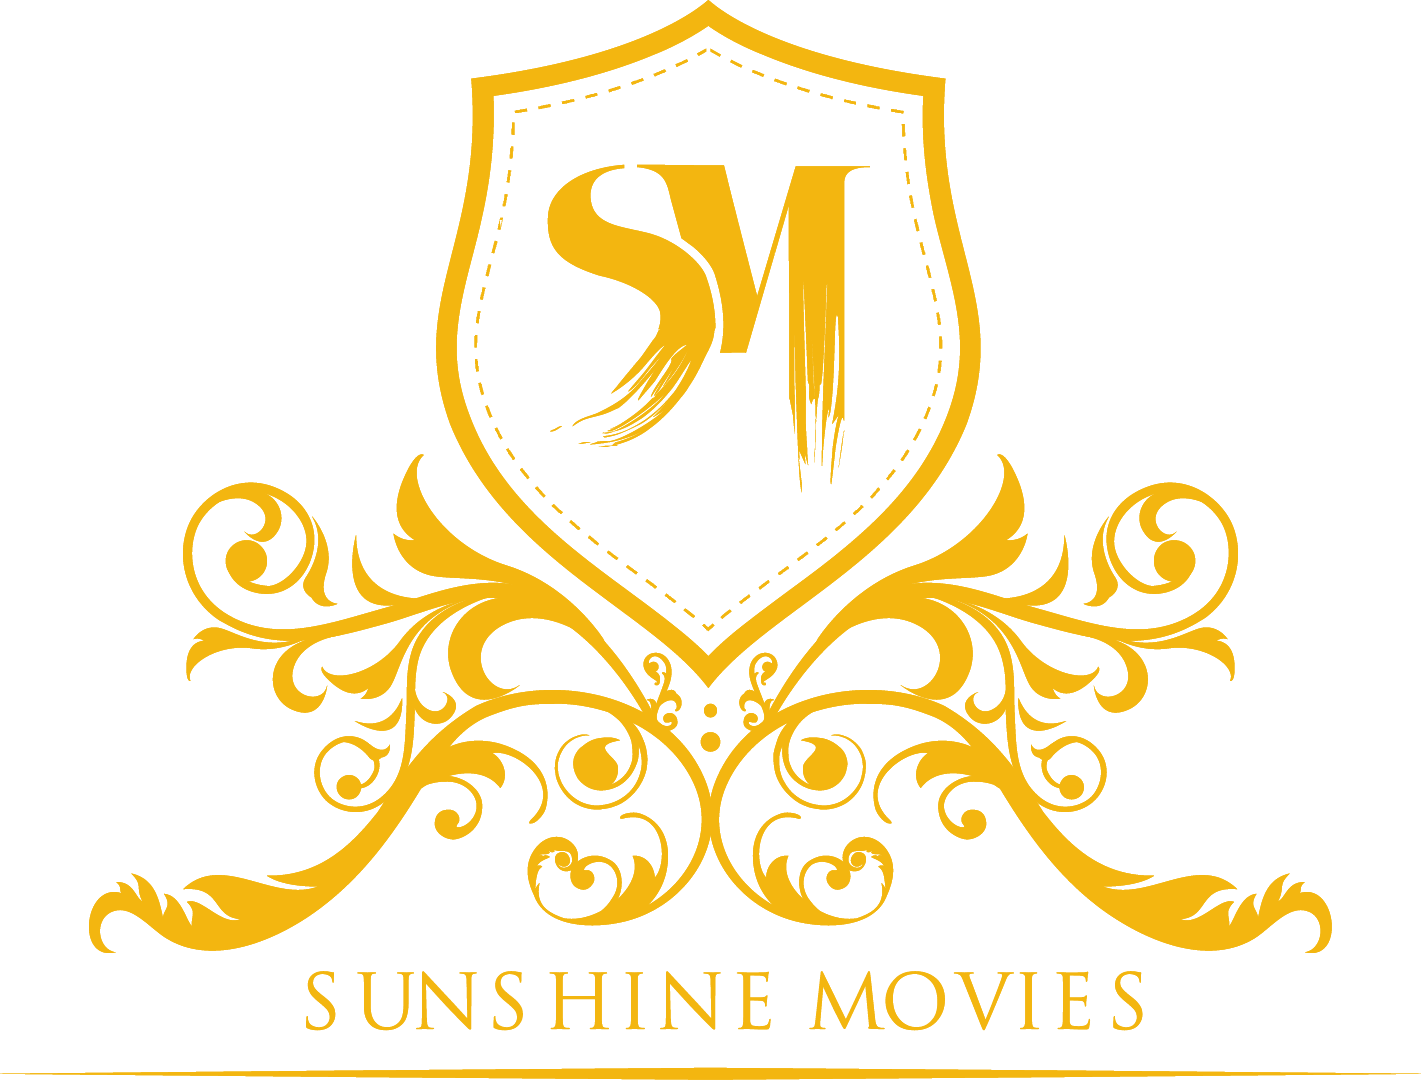 Sunshine Movies